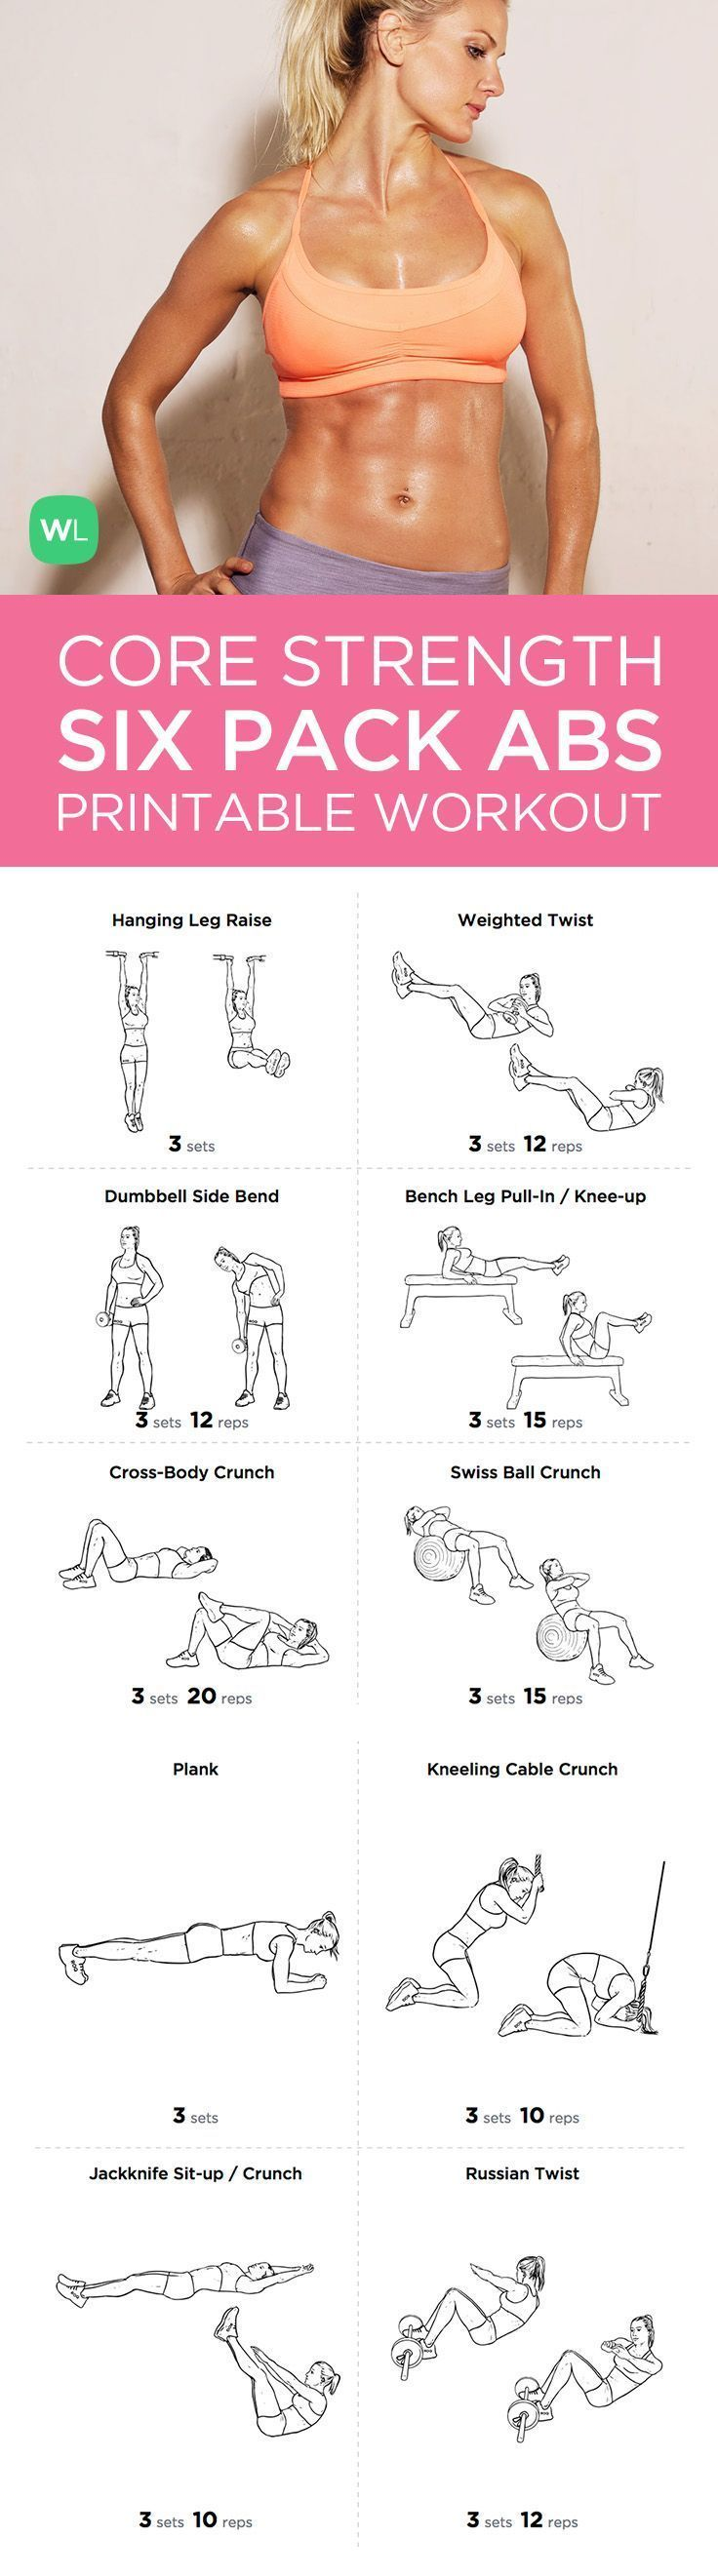 Whether it's six-pack abs, gain muscle or weight loss, these workout plan is great for beginners men and women. No gym or equipment needed!